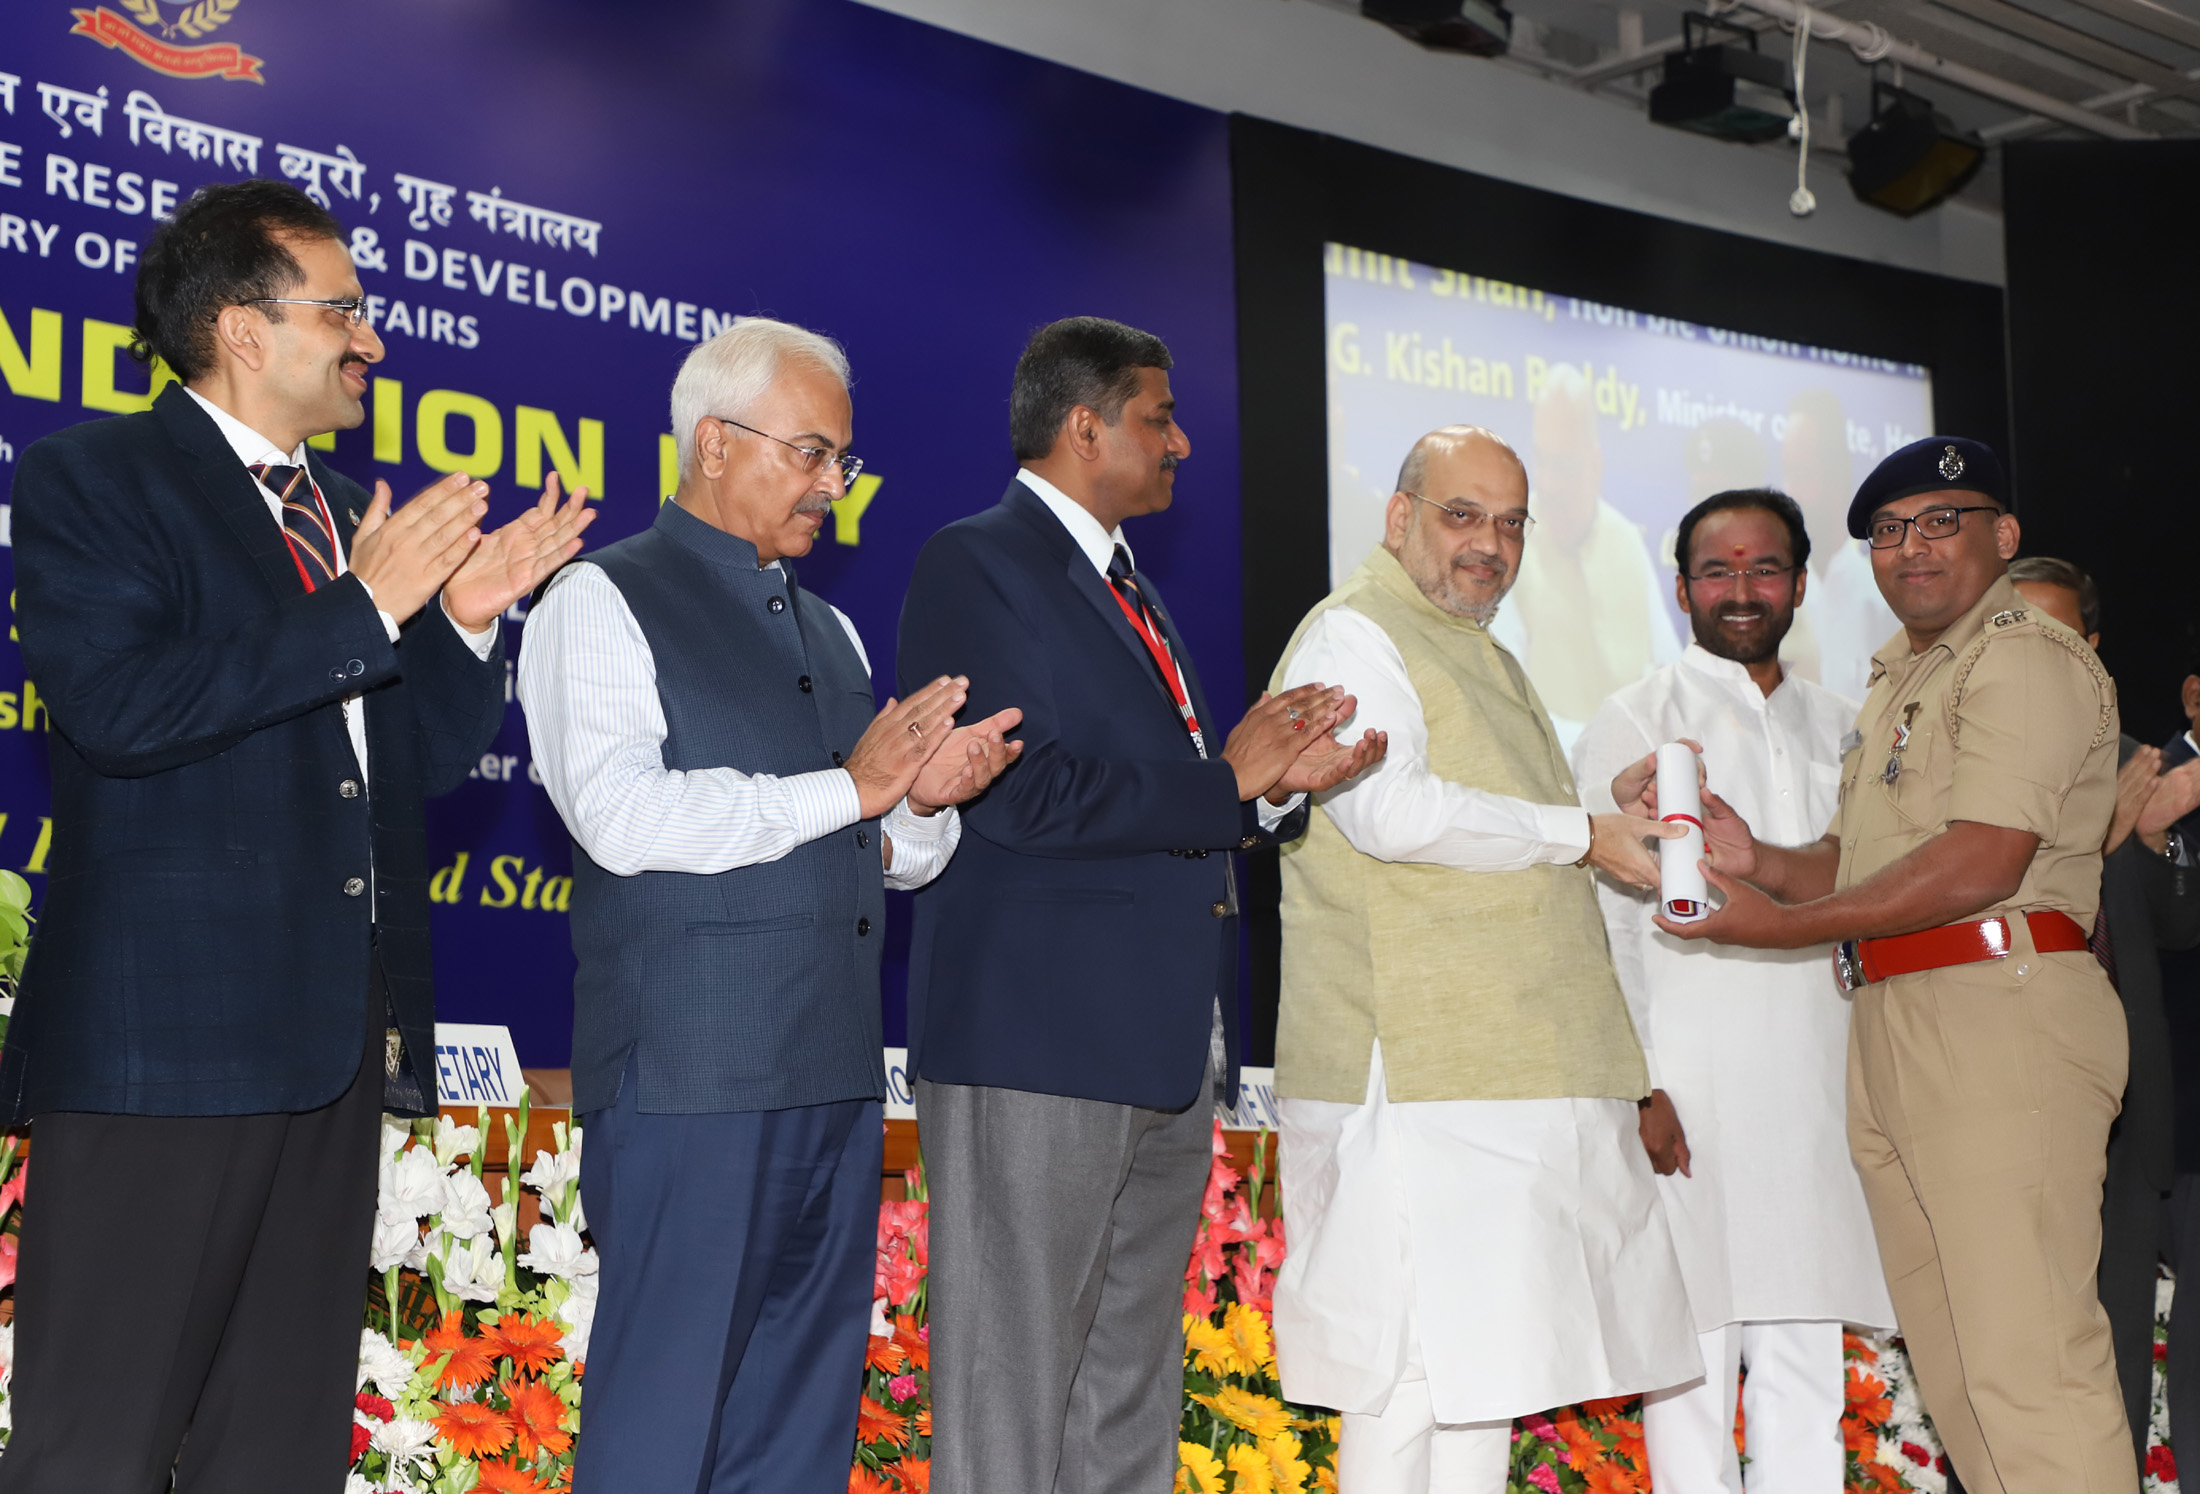 Home Minister presides over 49th Foundation Day of BPRD as Chief Guest